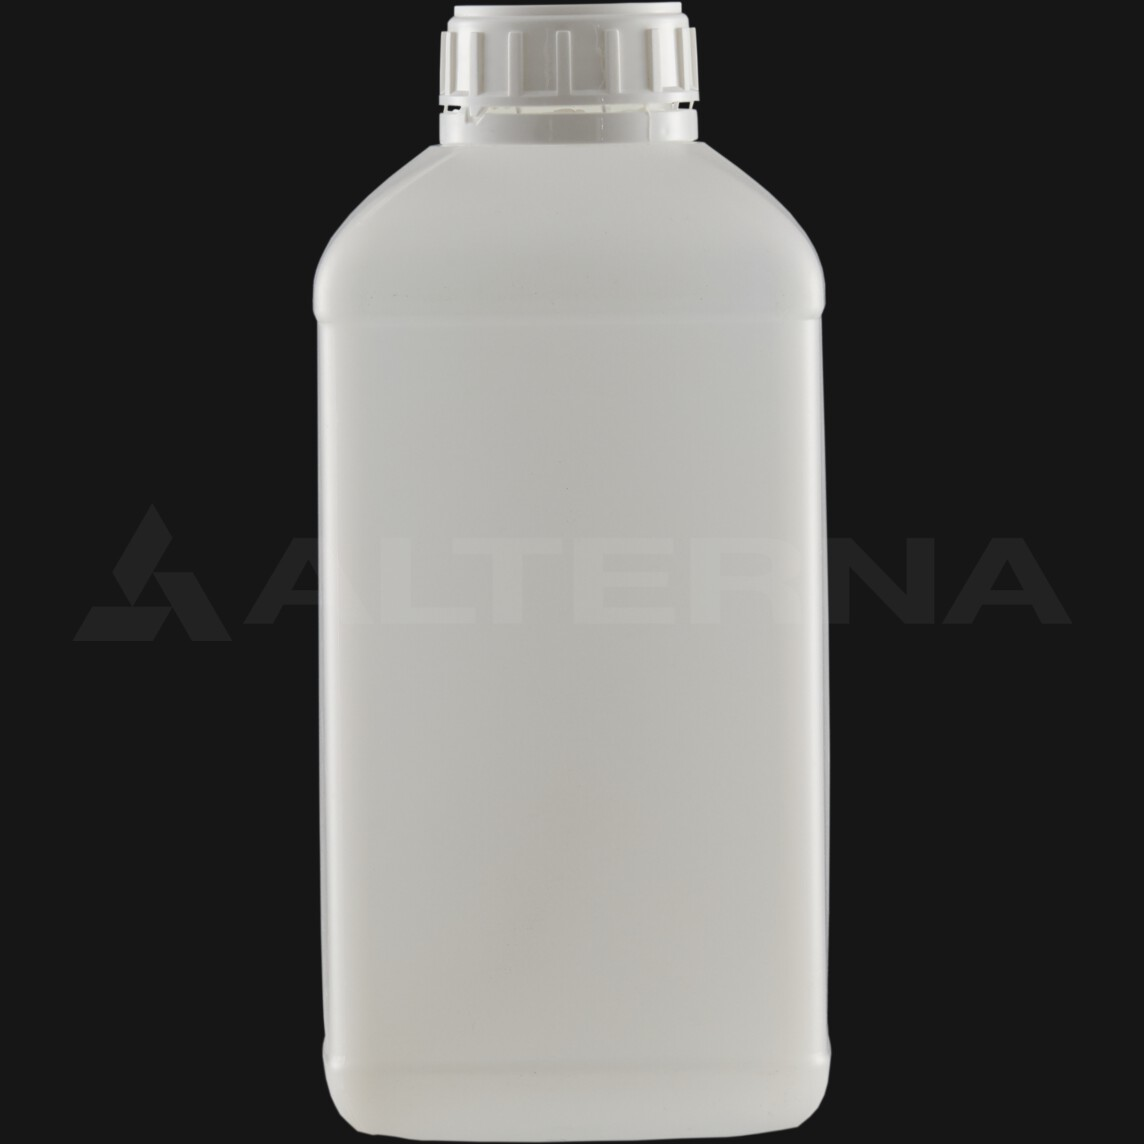 2000 ml HDPE Square Bottle with 50 mm Foam Seal Secure Cap